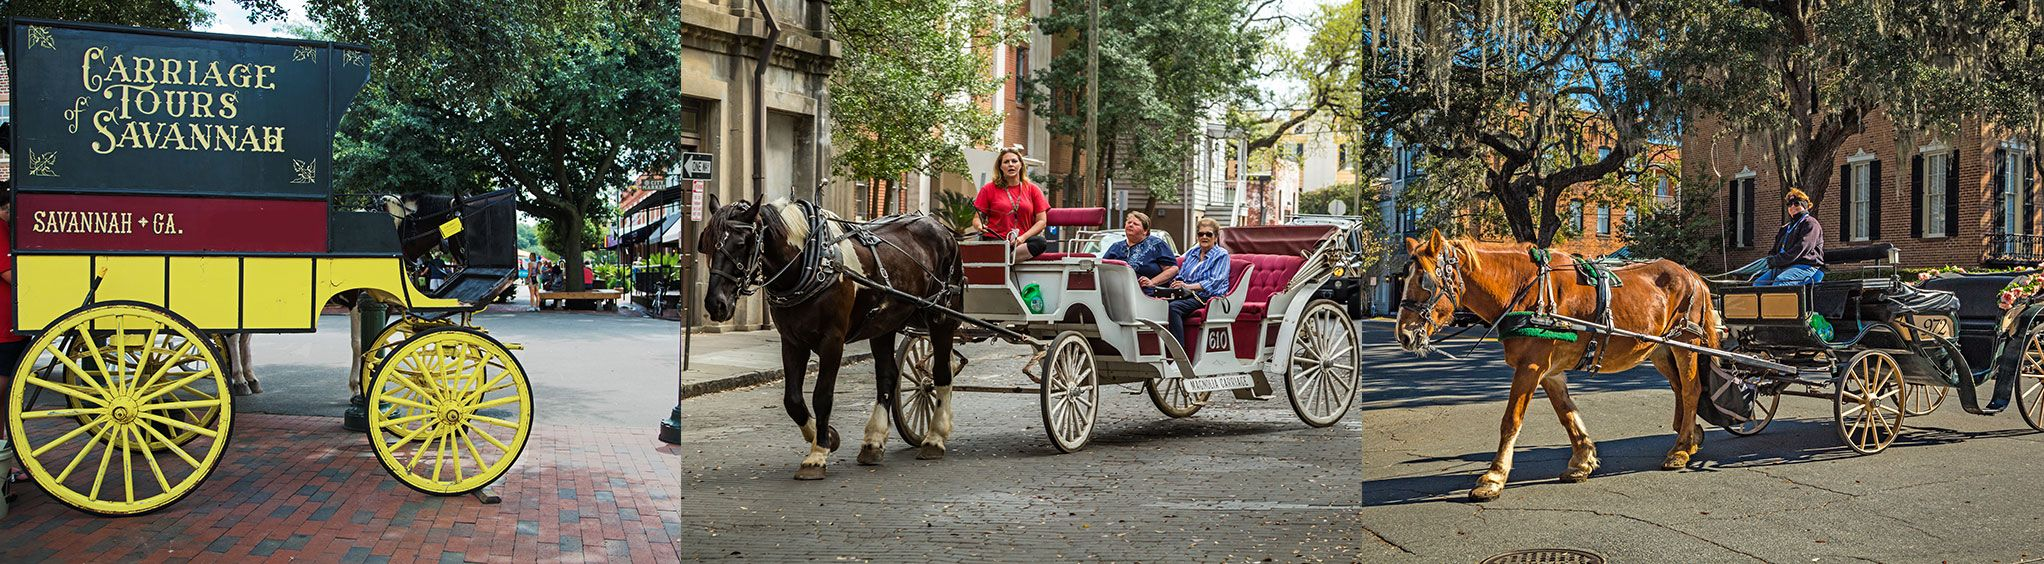 Savannah Carriage Tours in Savannah, GA